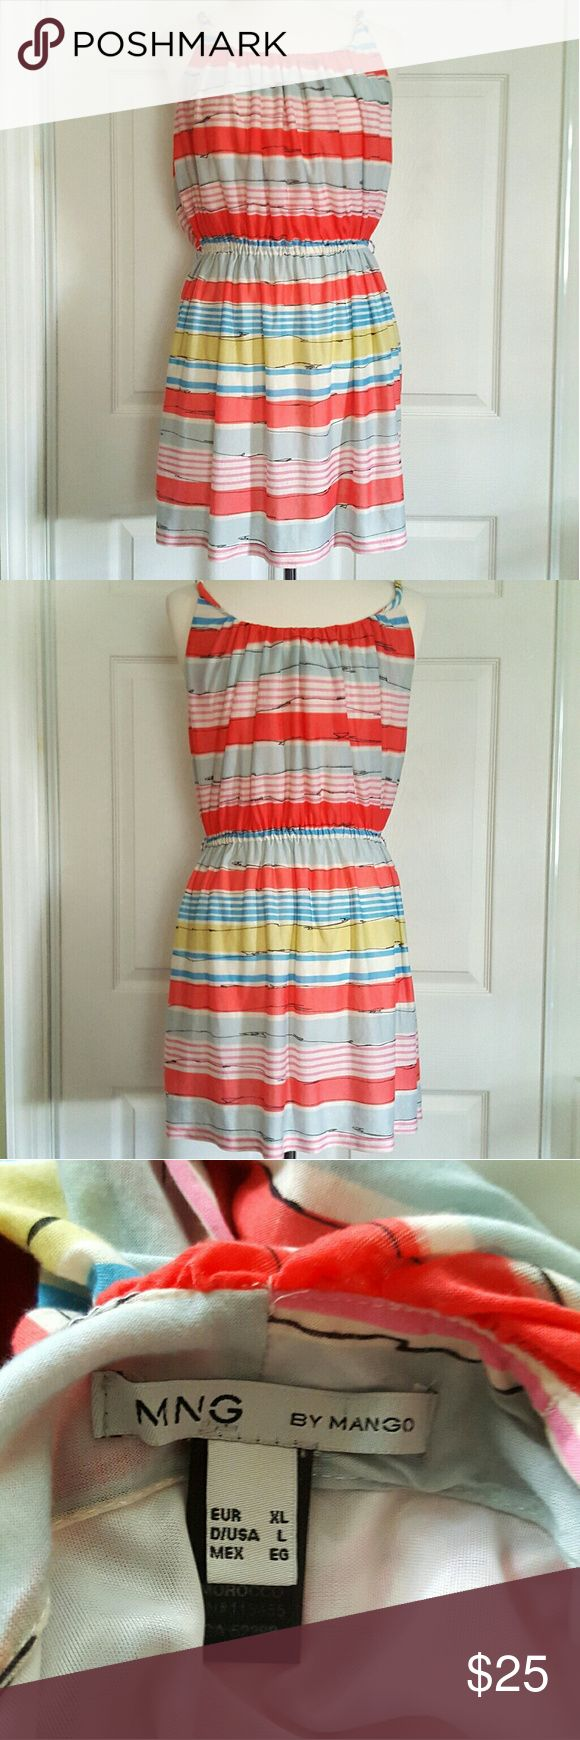 "MNG by Mango Colorful Dress Size XL Length - 38"" Bust - 20.5"" Mango Dresses"